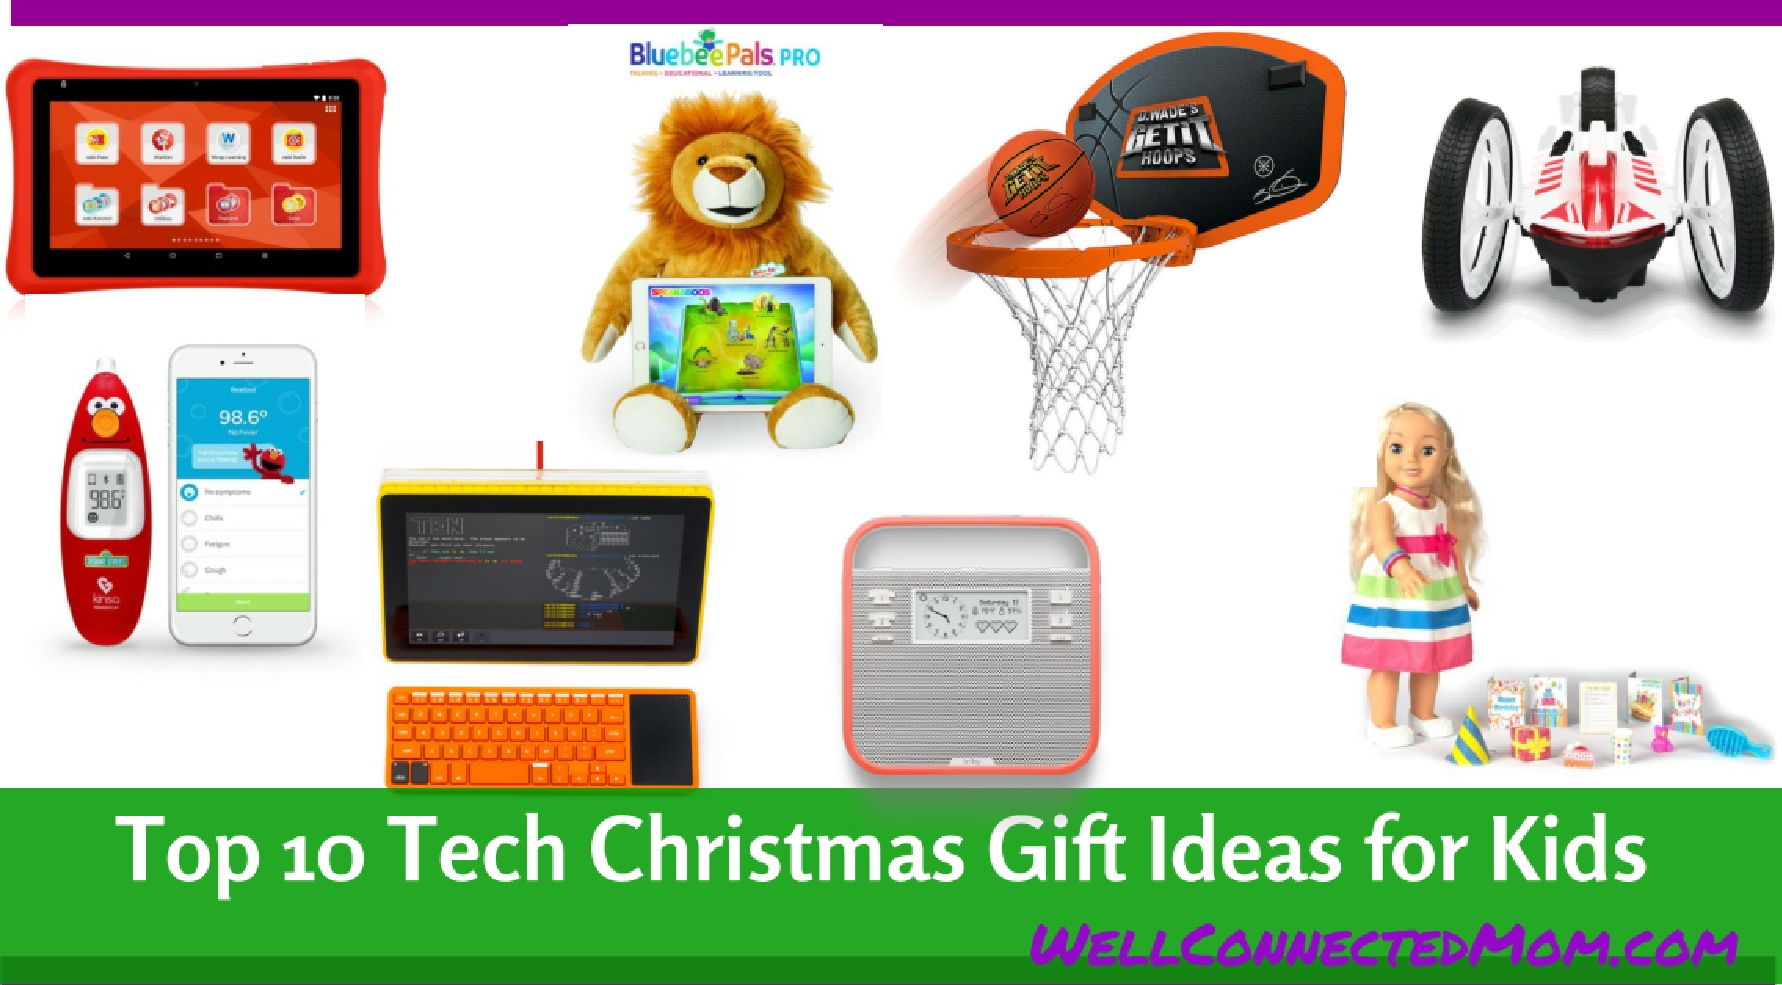 10 Spectacular Top Christmas Gift Ideas 2013 top 10 tech christmas gift ideas for kids the well connected mom 2020